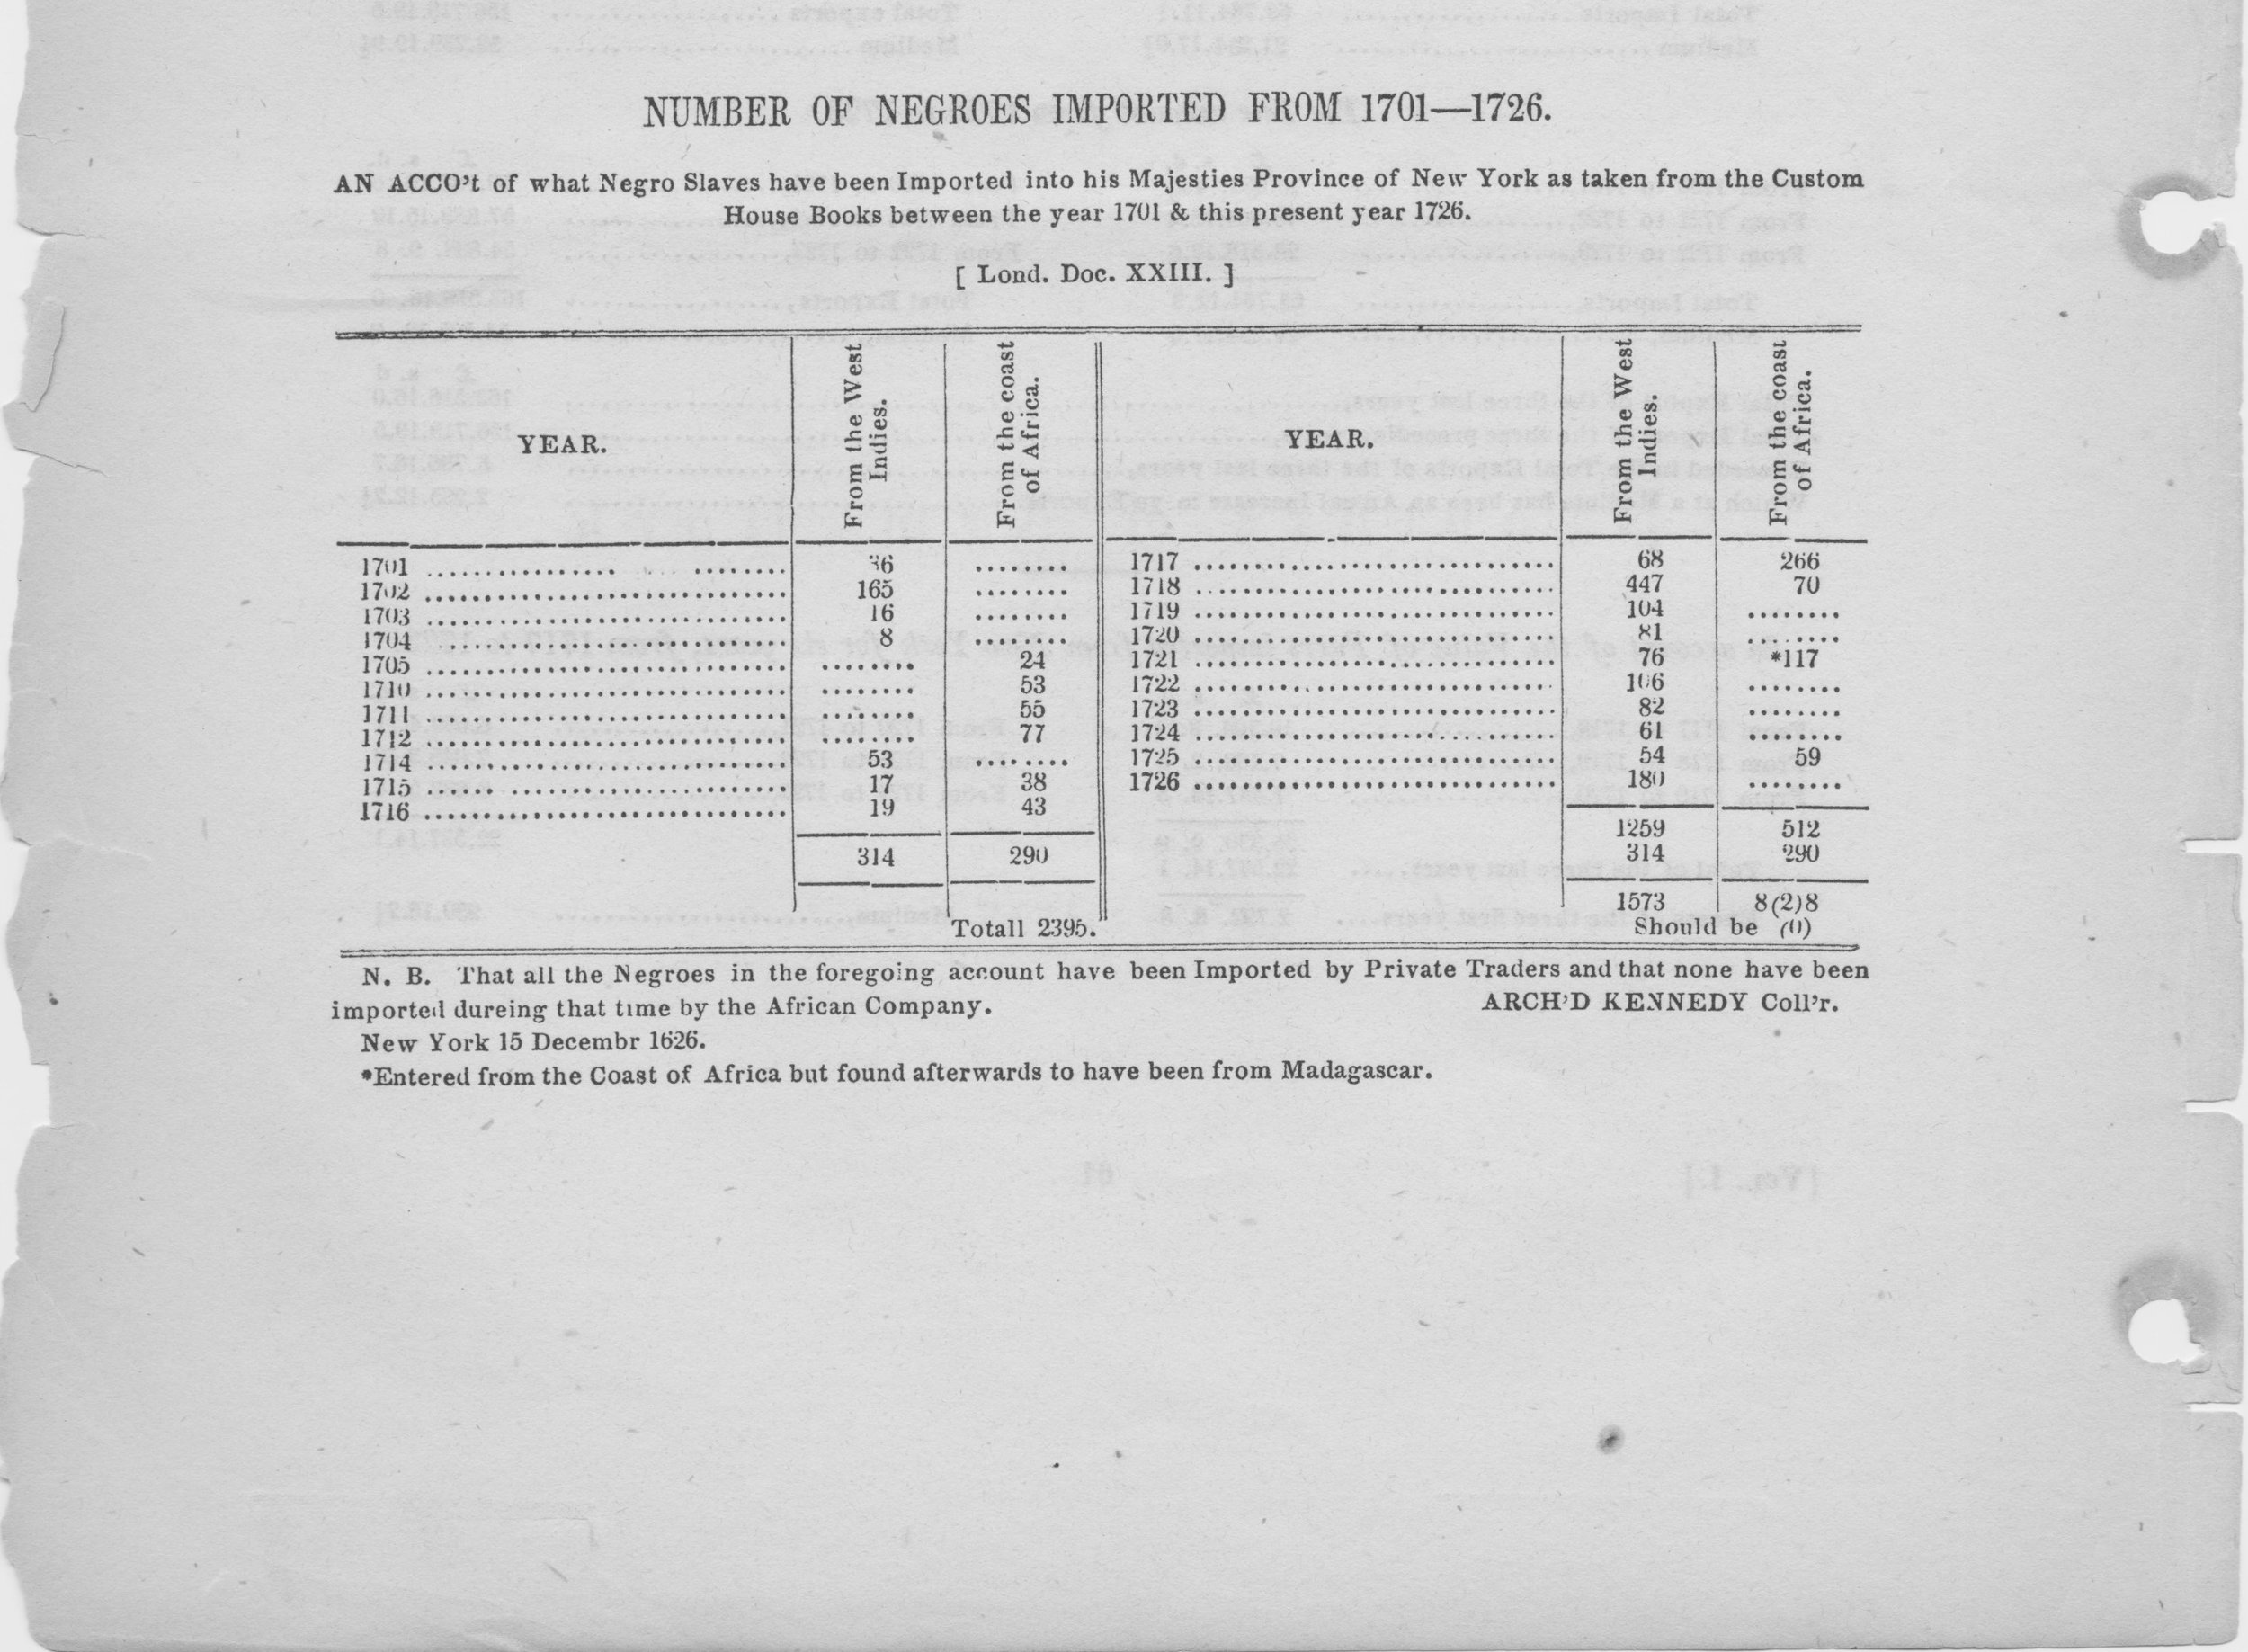 British custom records showing the number of slaves imported to New York between 1701 and 1726.